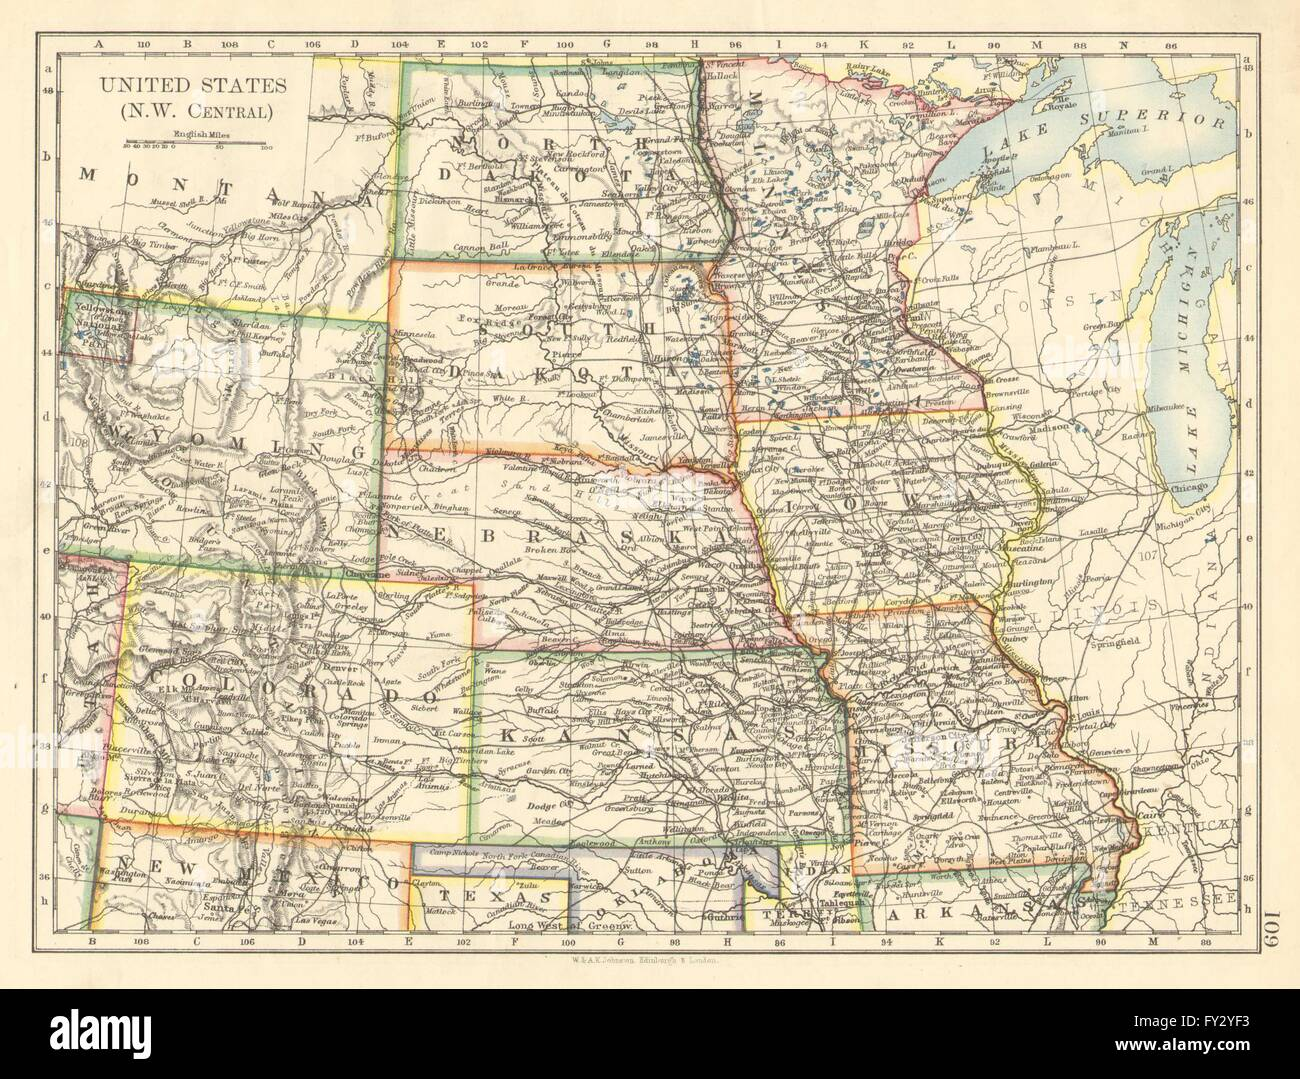 Geographical Map Of Minnesota And Minnesota Geographical Maps - Political map of minnesota